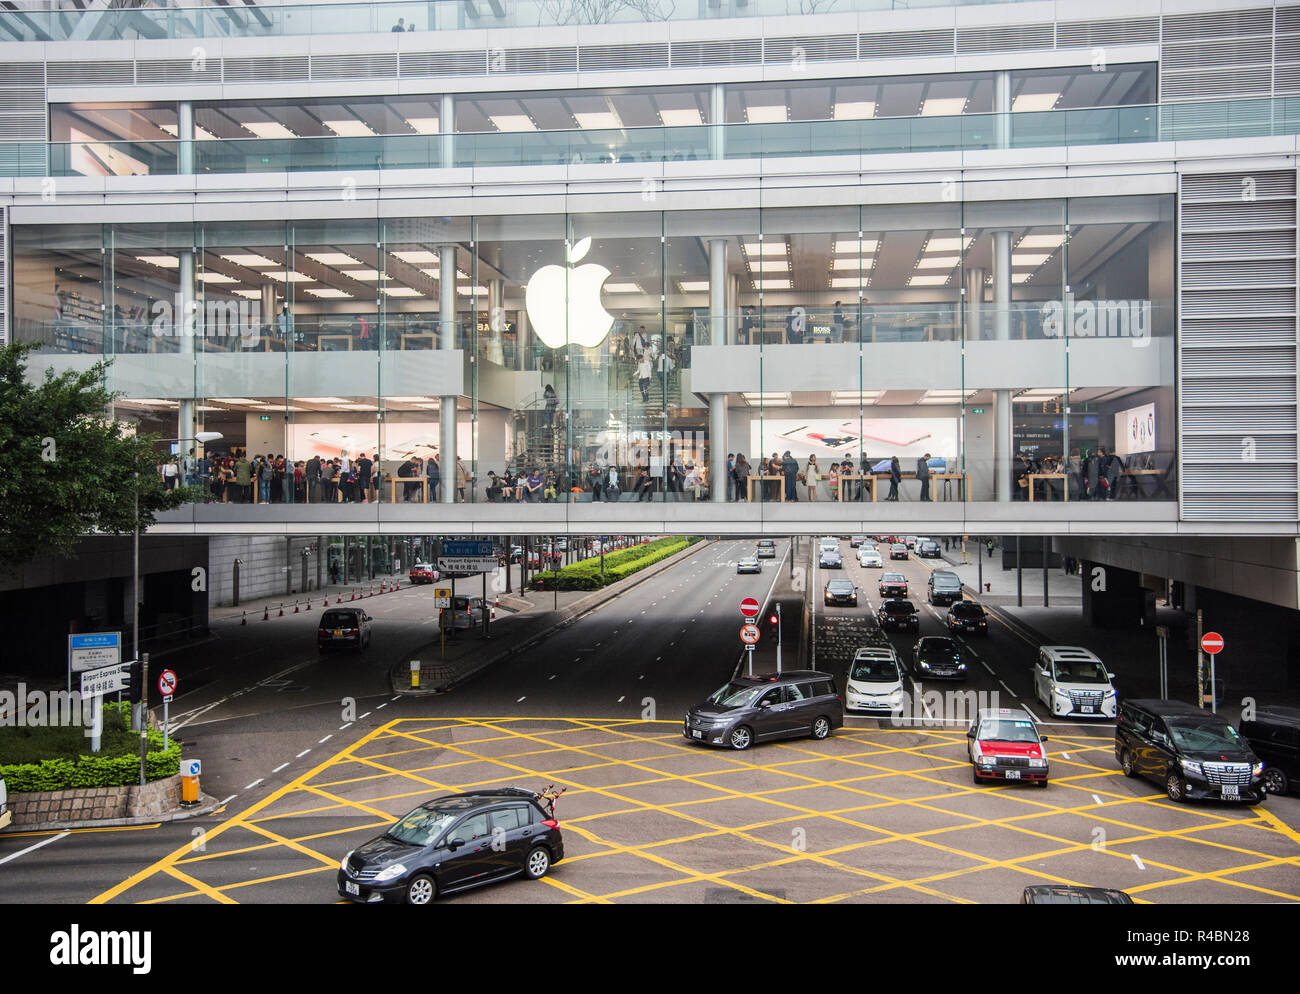 A view of the popular Apple building in the Causway Bay district of HongKong Island China. - Stock Image